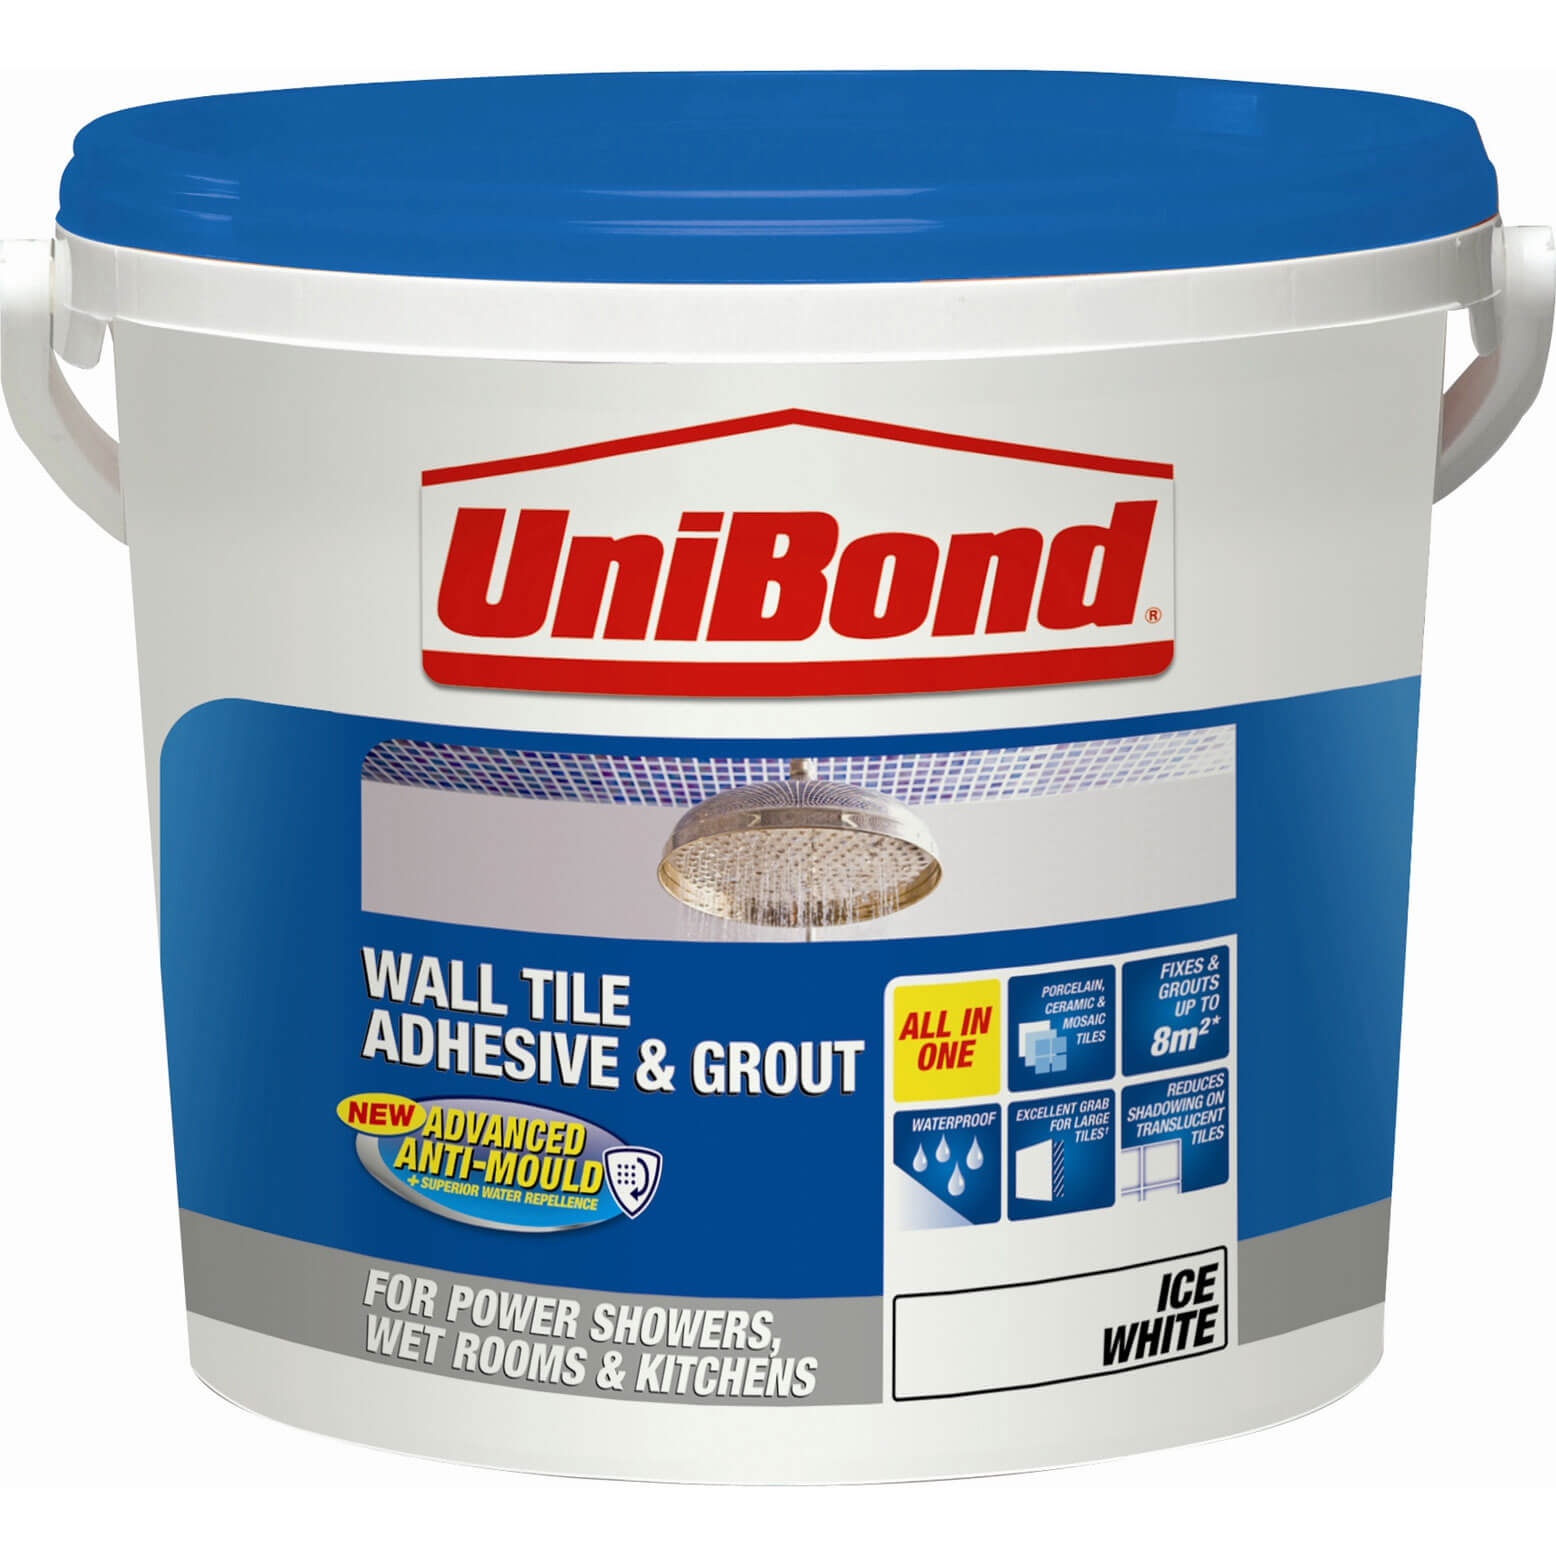 Bathroom Tile Adhesive And Grout: Unibond Triple Protection Anti Mould Tile Adhesive Grout